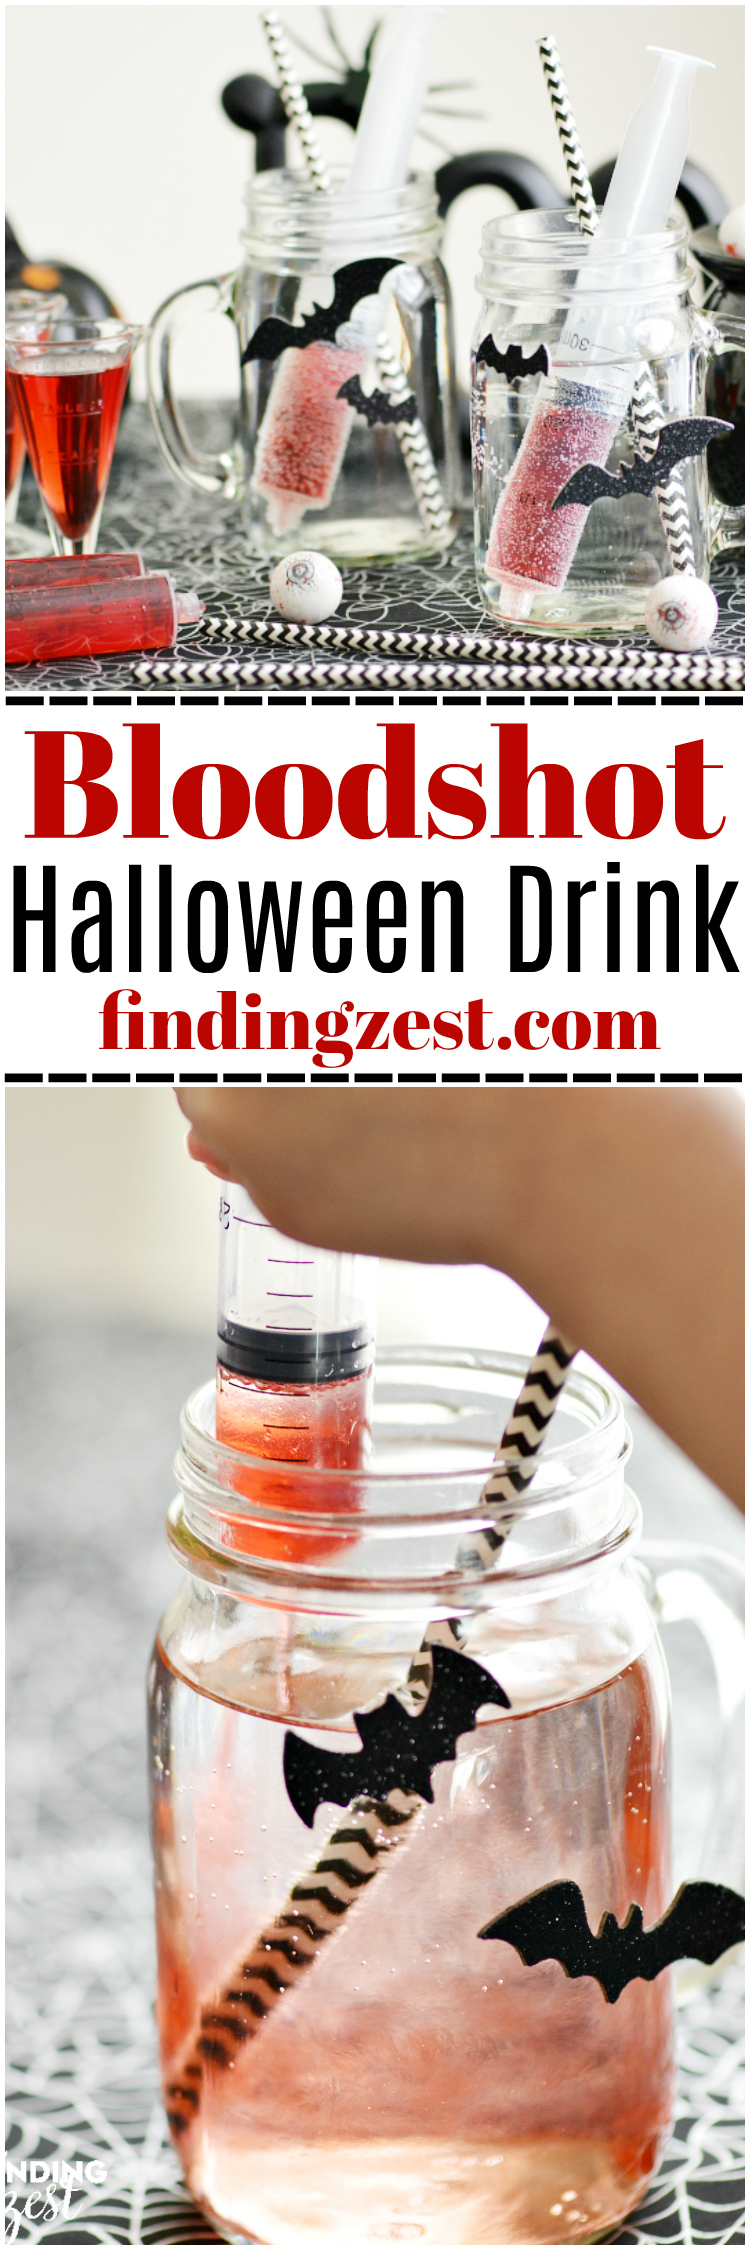 This Bloodshot Halloween Drink for Kids is a fun and healthy option with no added sugar or artificial dyes! Perfect for a Halloween party or just for fun!